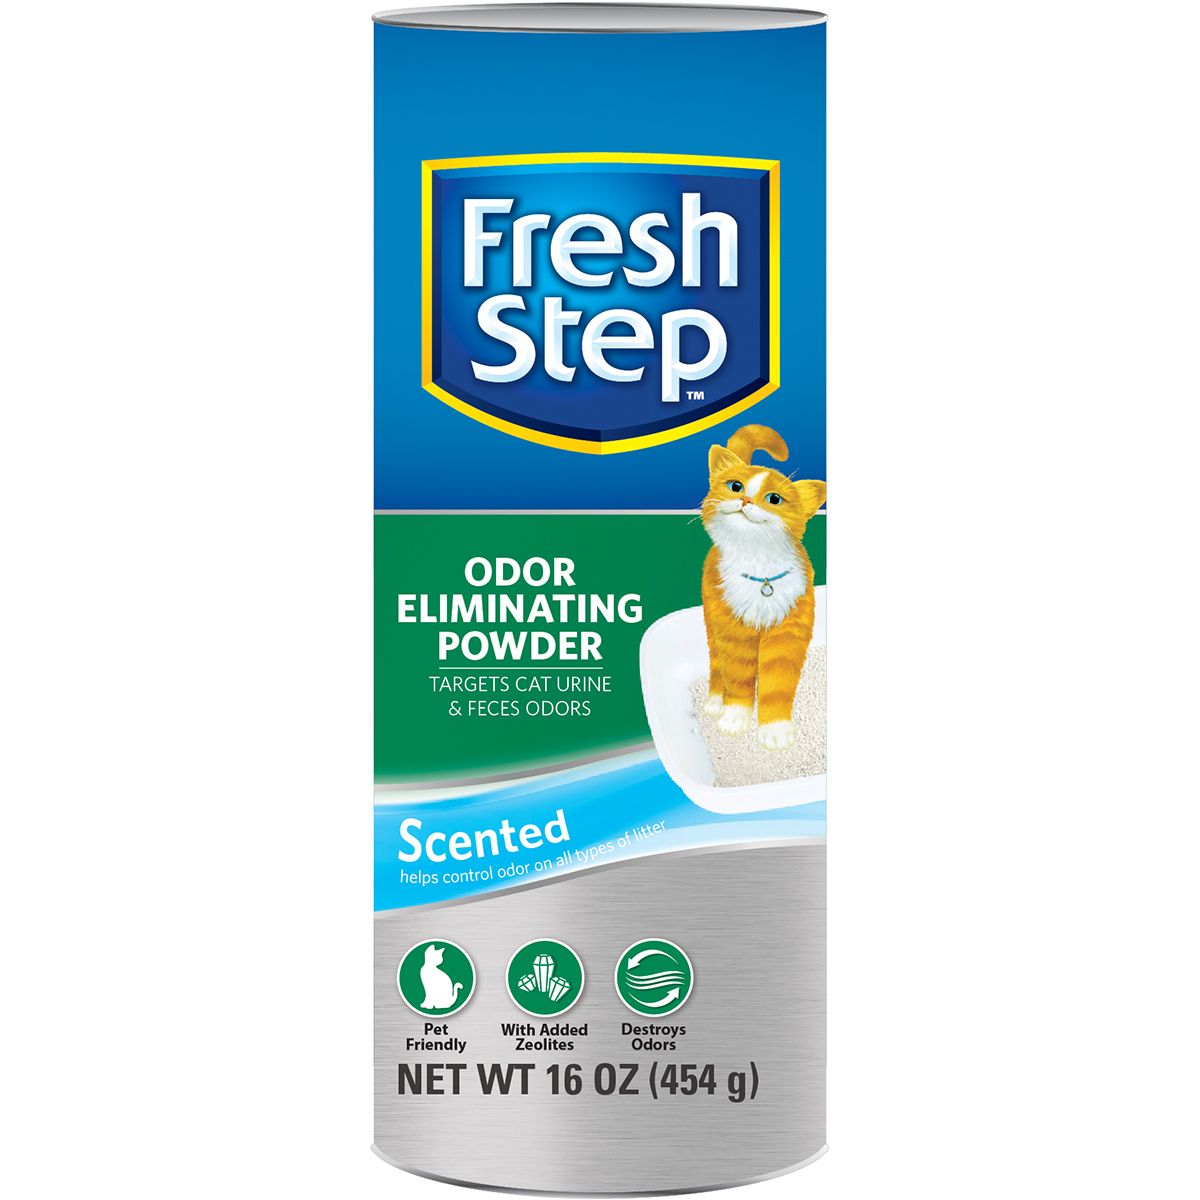 Fresh Step Odor Eliminating Powder 16oz-Made With Zeolites